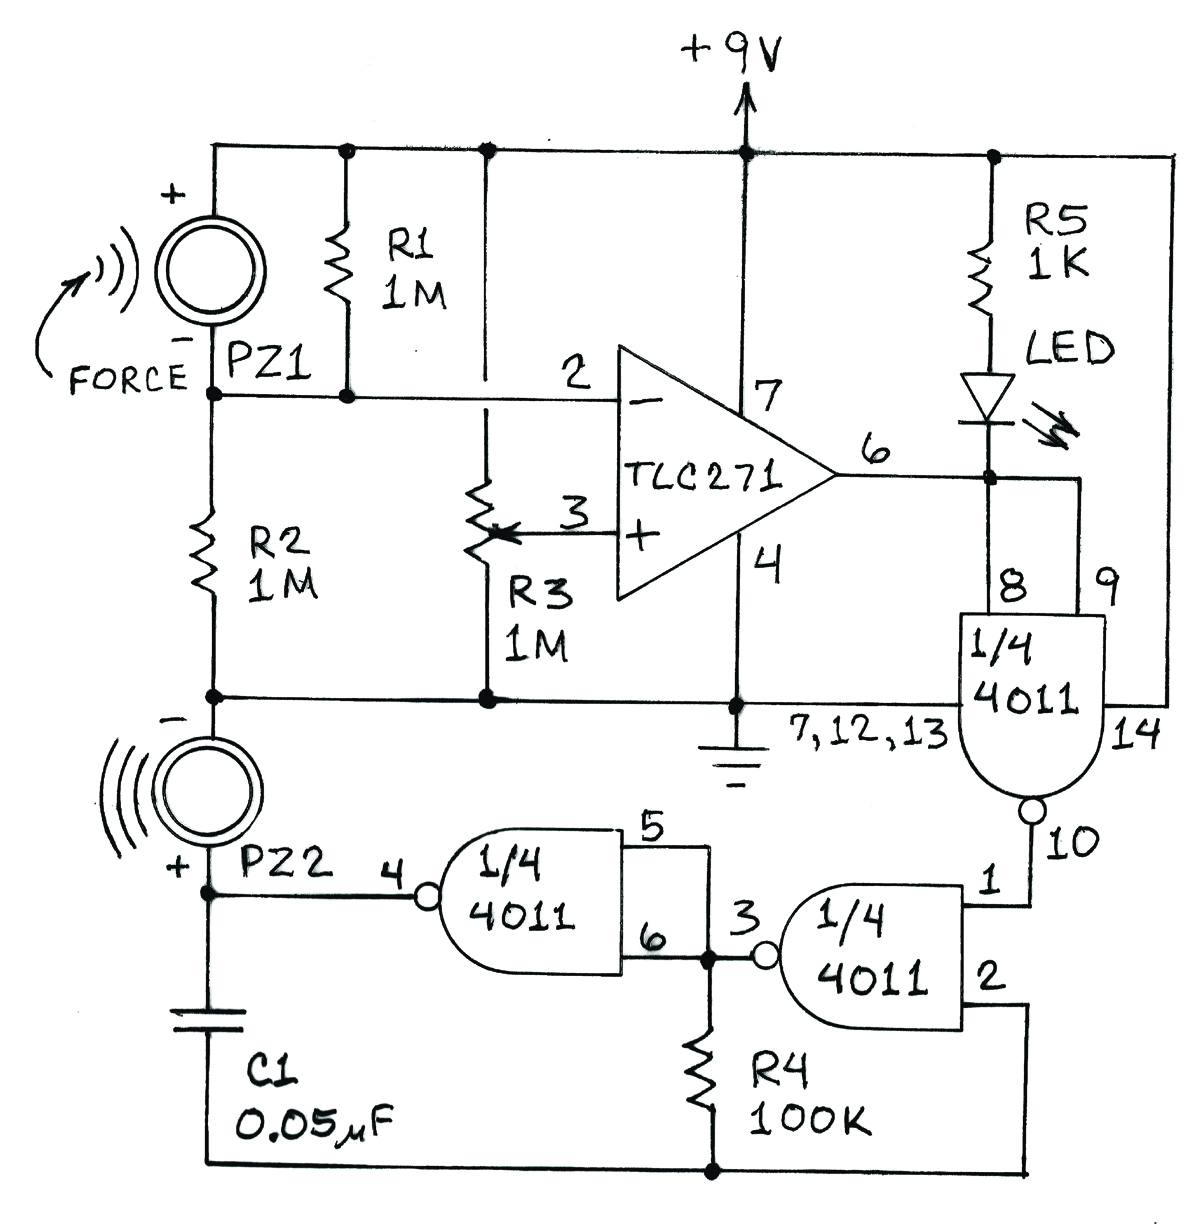 sears wiring diagram 917 23570 garden tractor sears wiring piezoelectric switch circuit piezoelectric circuits to battery